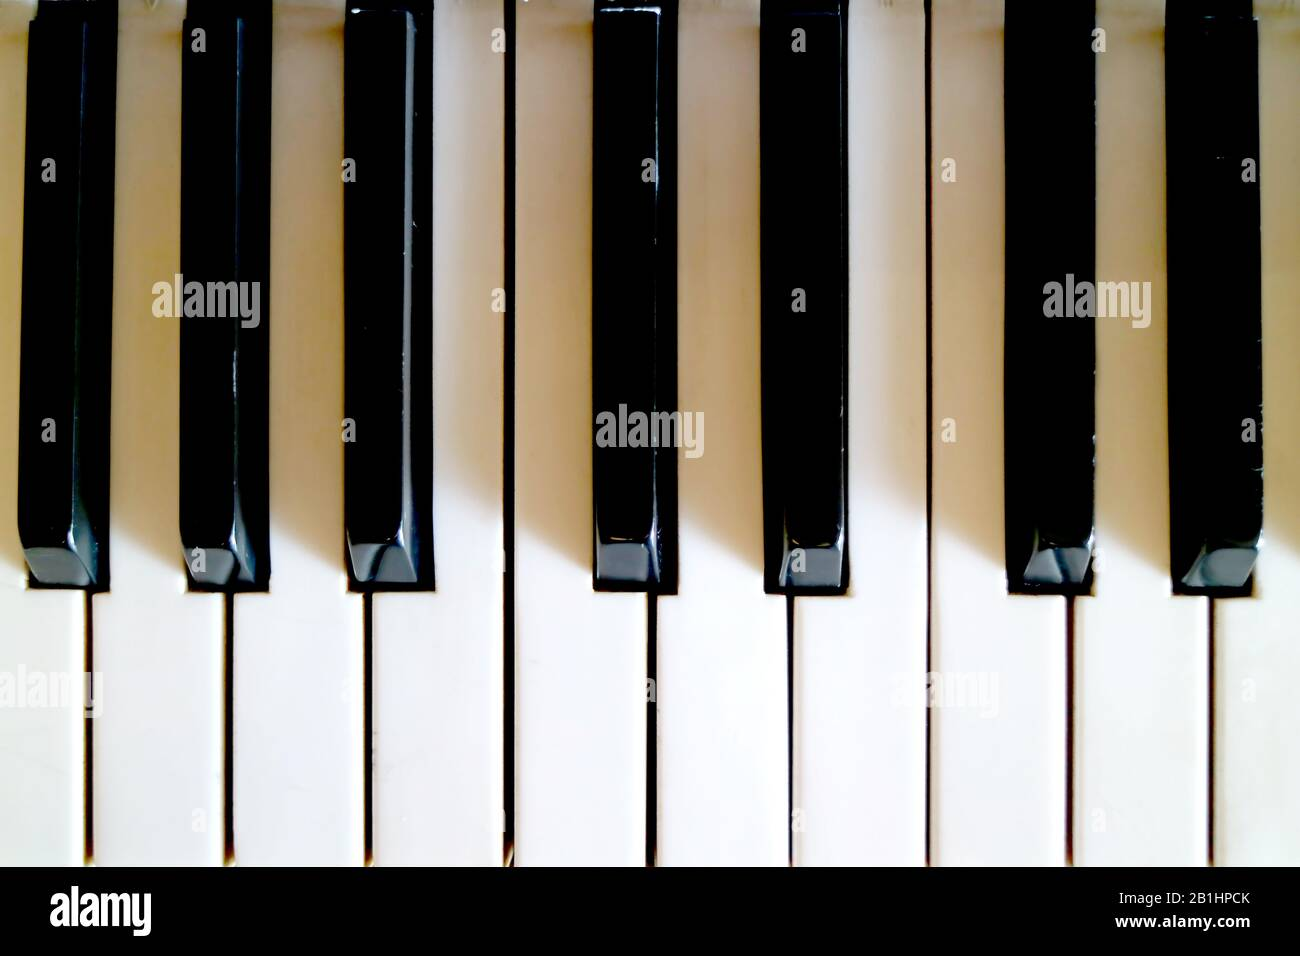 Top View Of The Piano S Keyboard For Background Or Banner Stock Photo Alamy